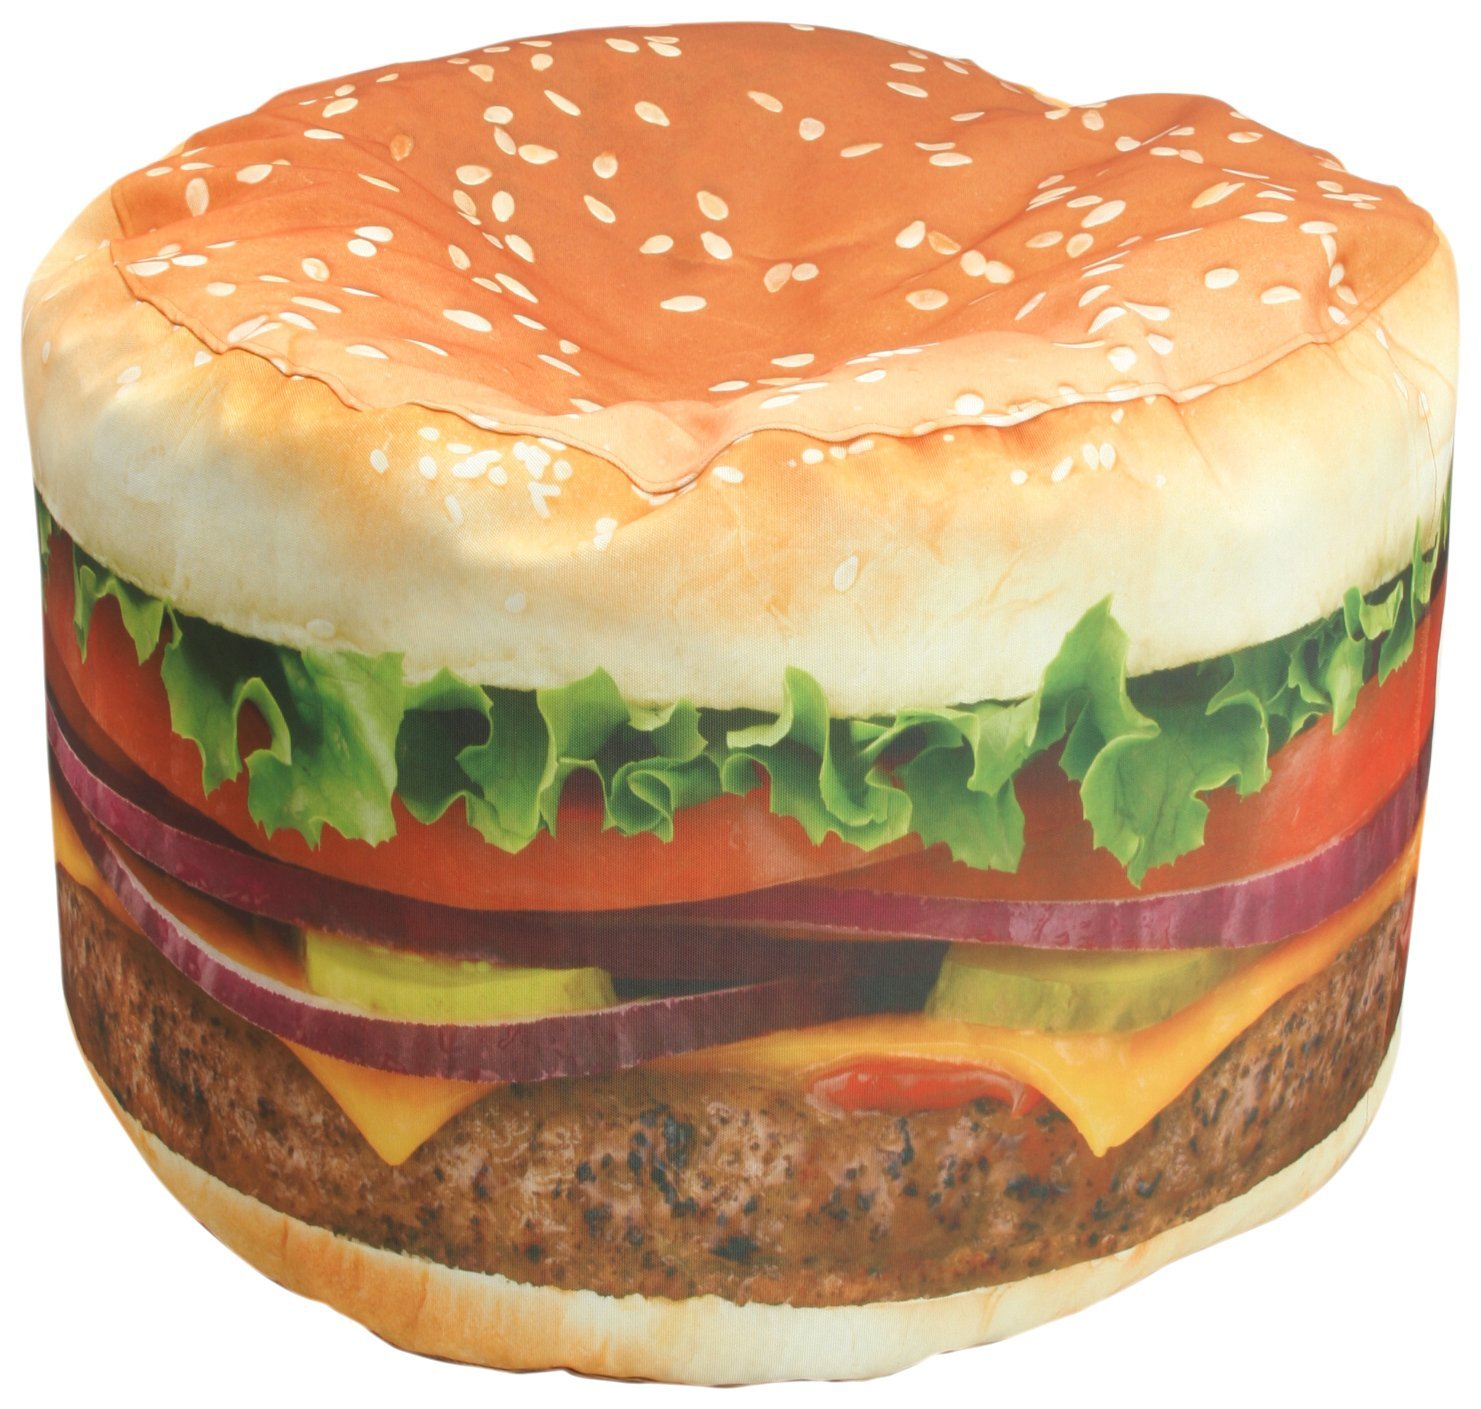 Amazon.com - Wow! Works Hamburger Adult Beanbag chair - Bean Bag Chairs